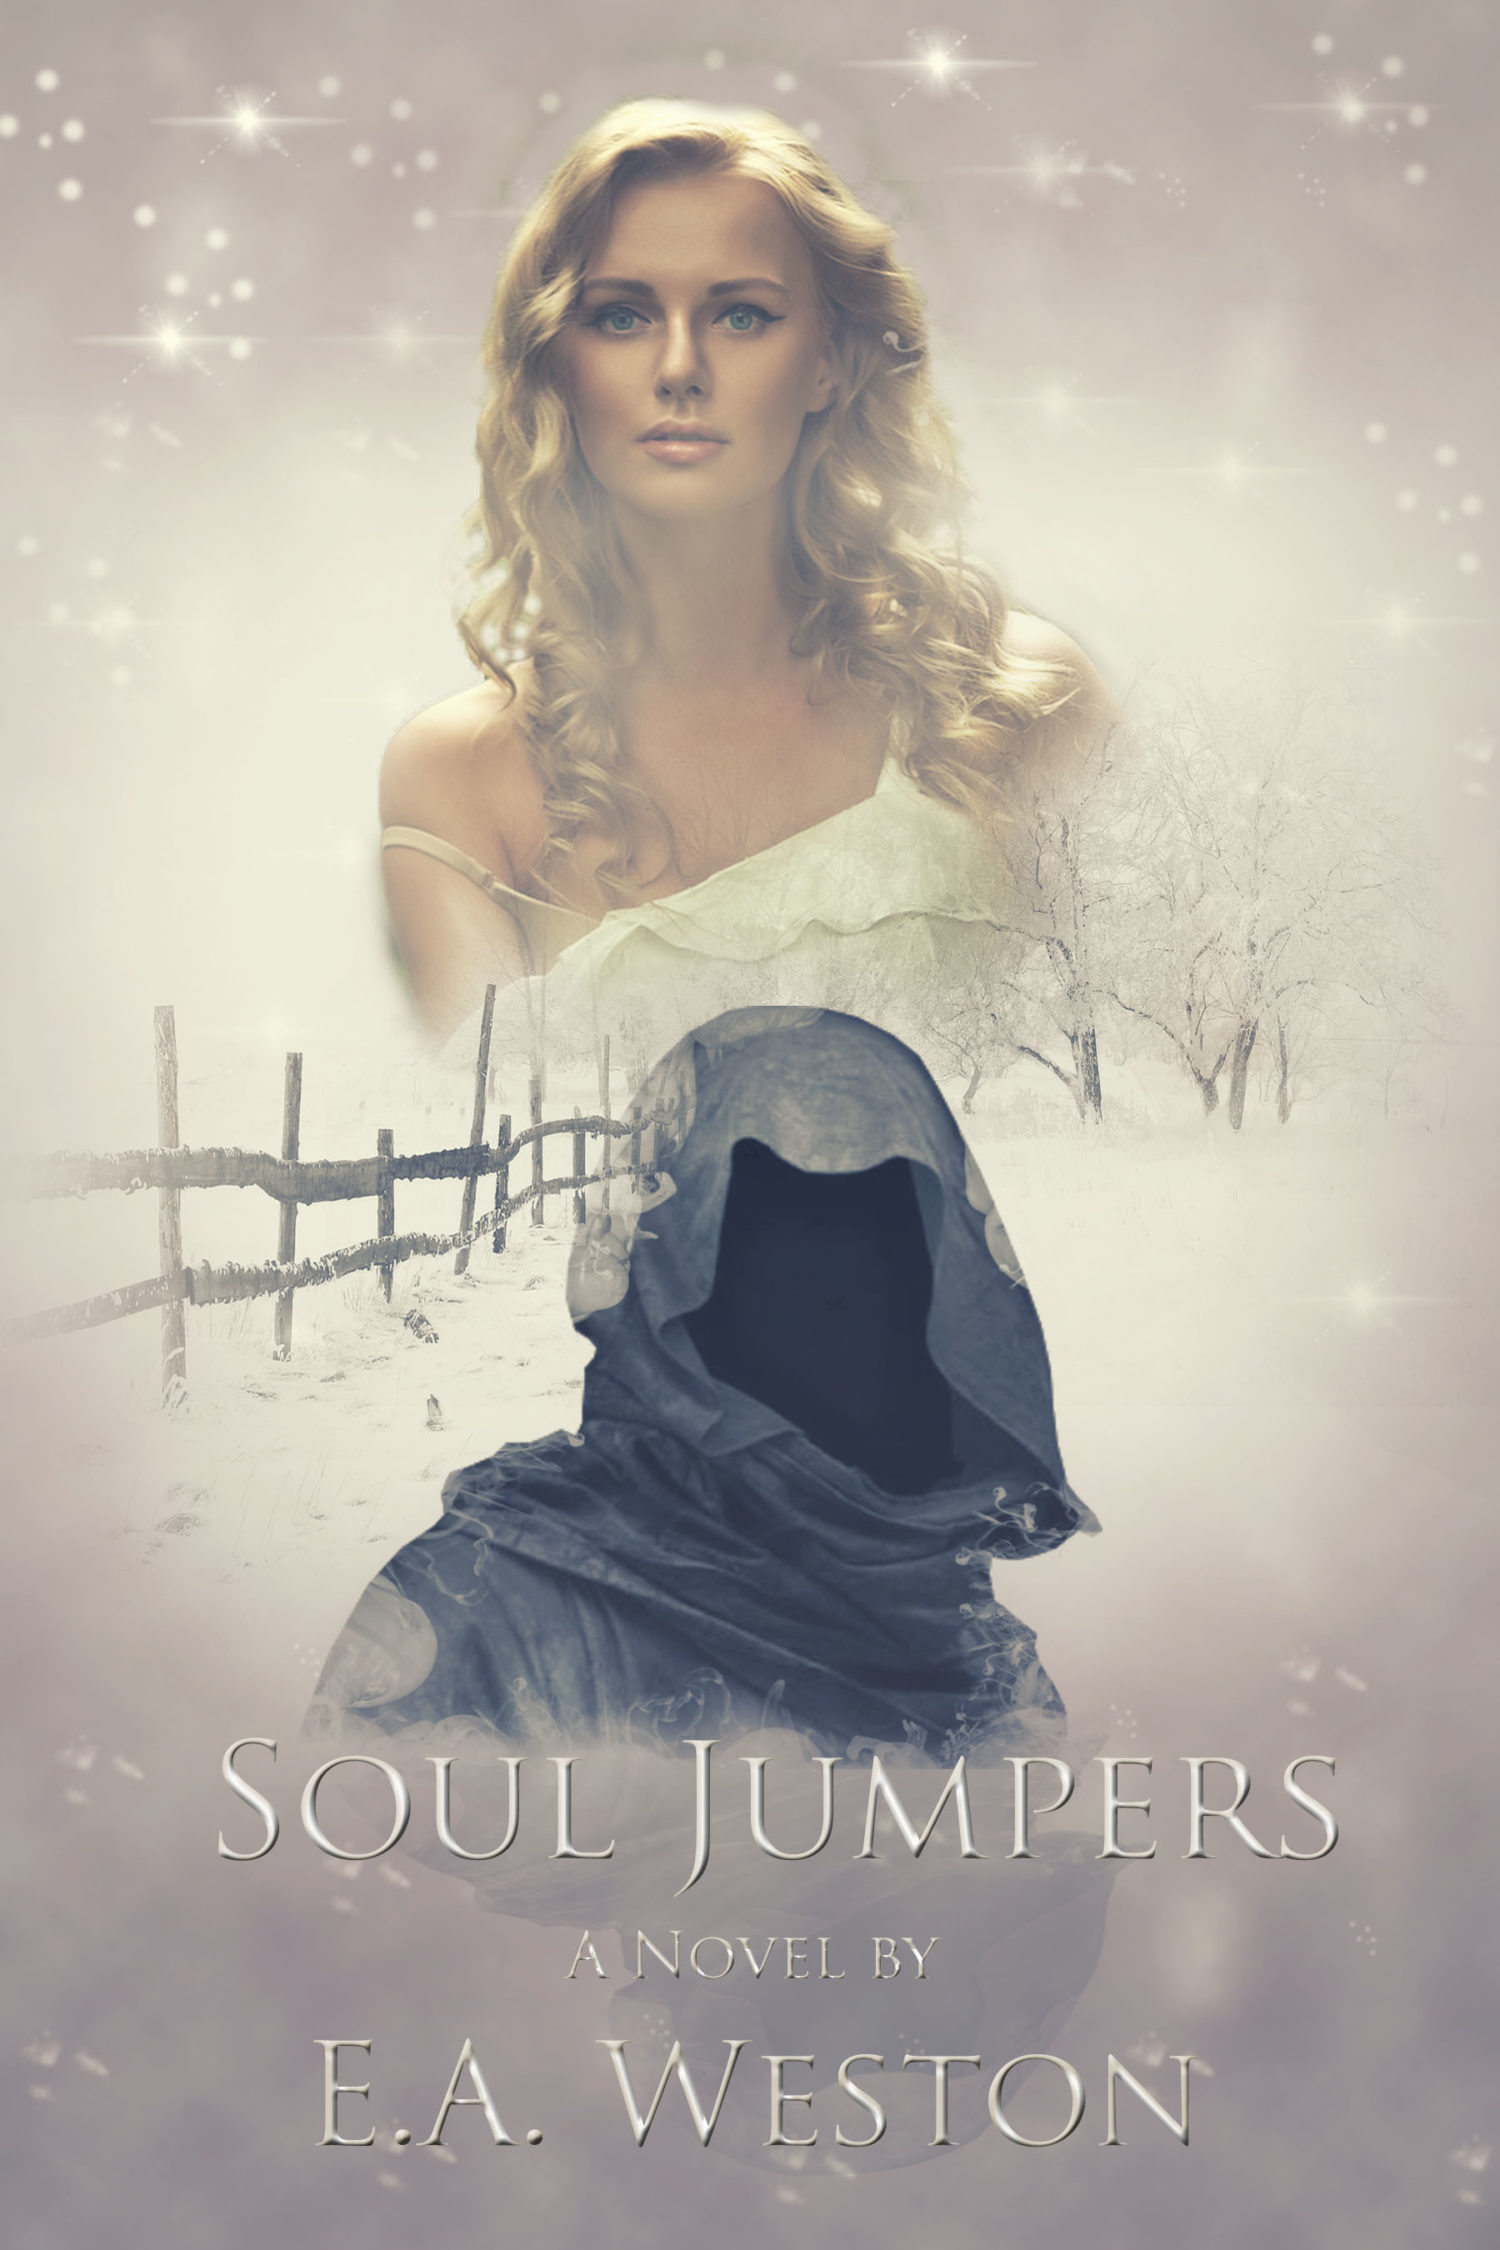 Soul Jumpers